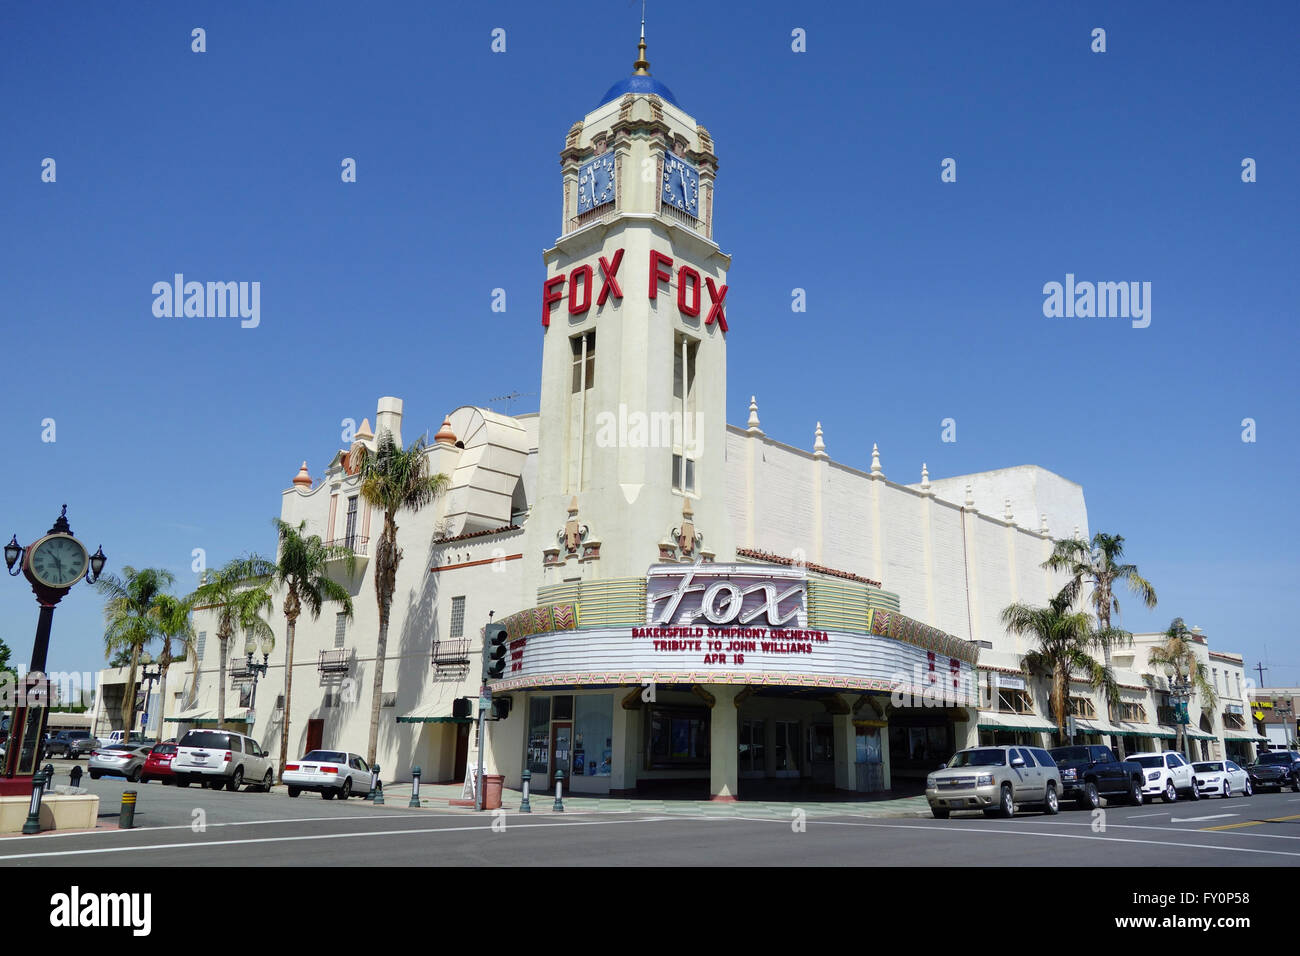 historic Fox movie theater on street in downtown Bakersfield Southern California United States of America - Stock Image